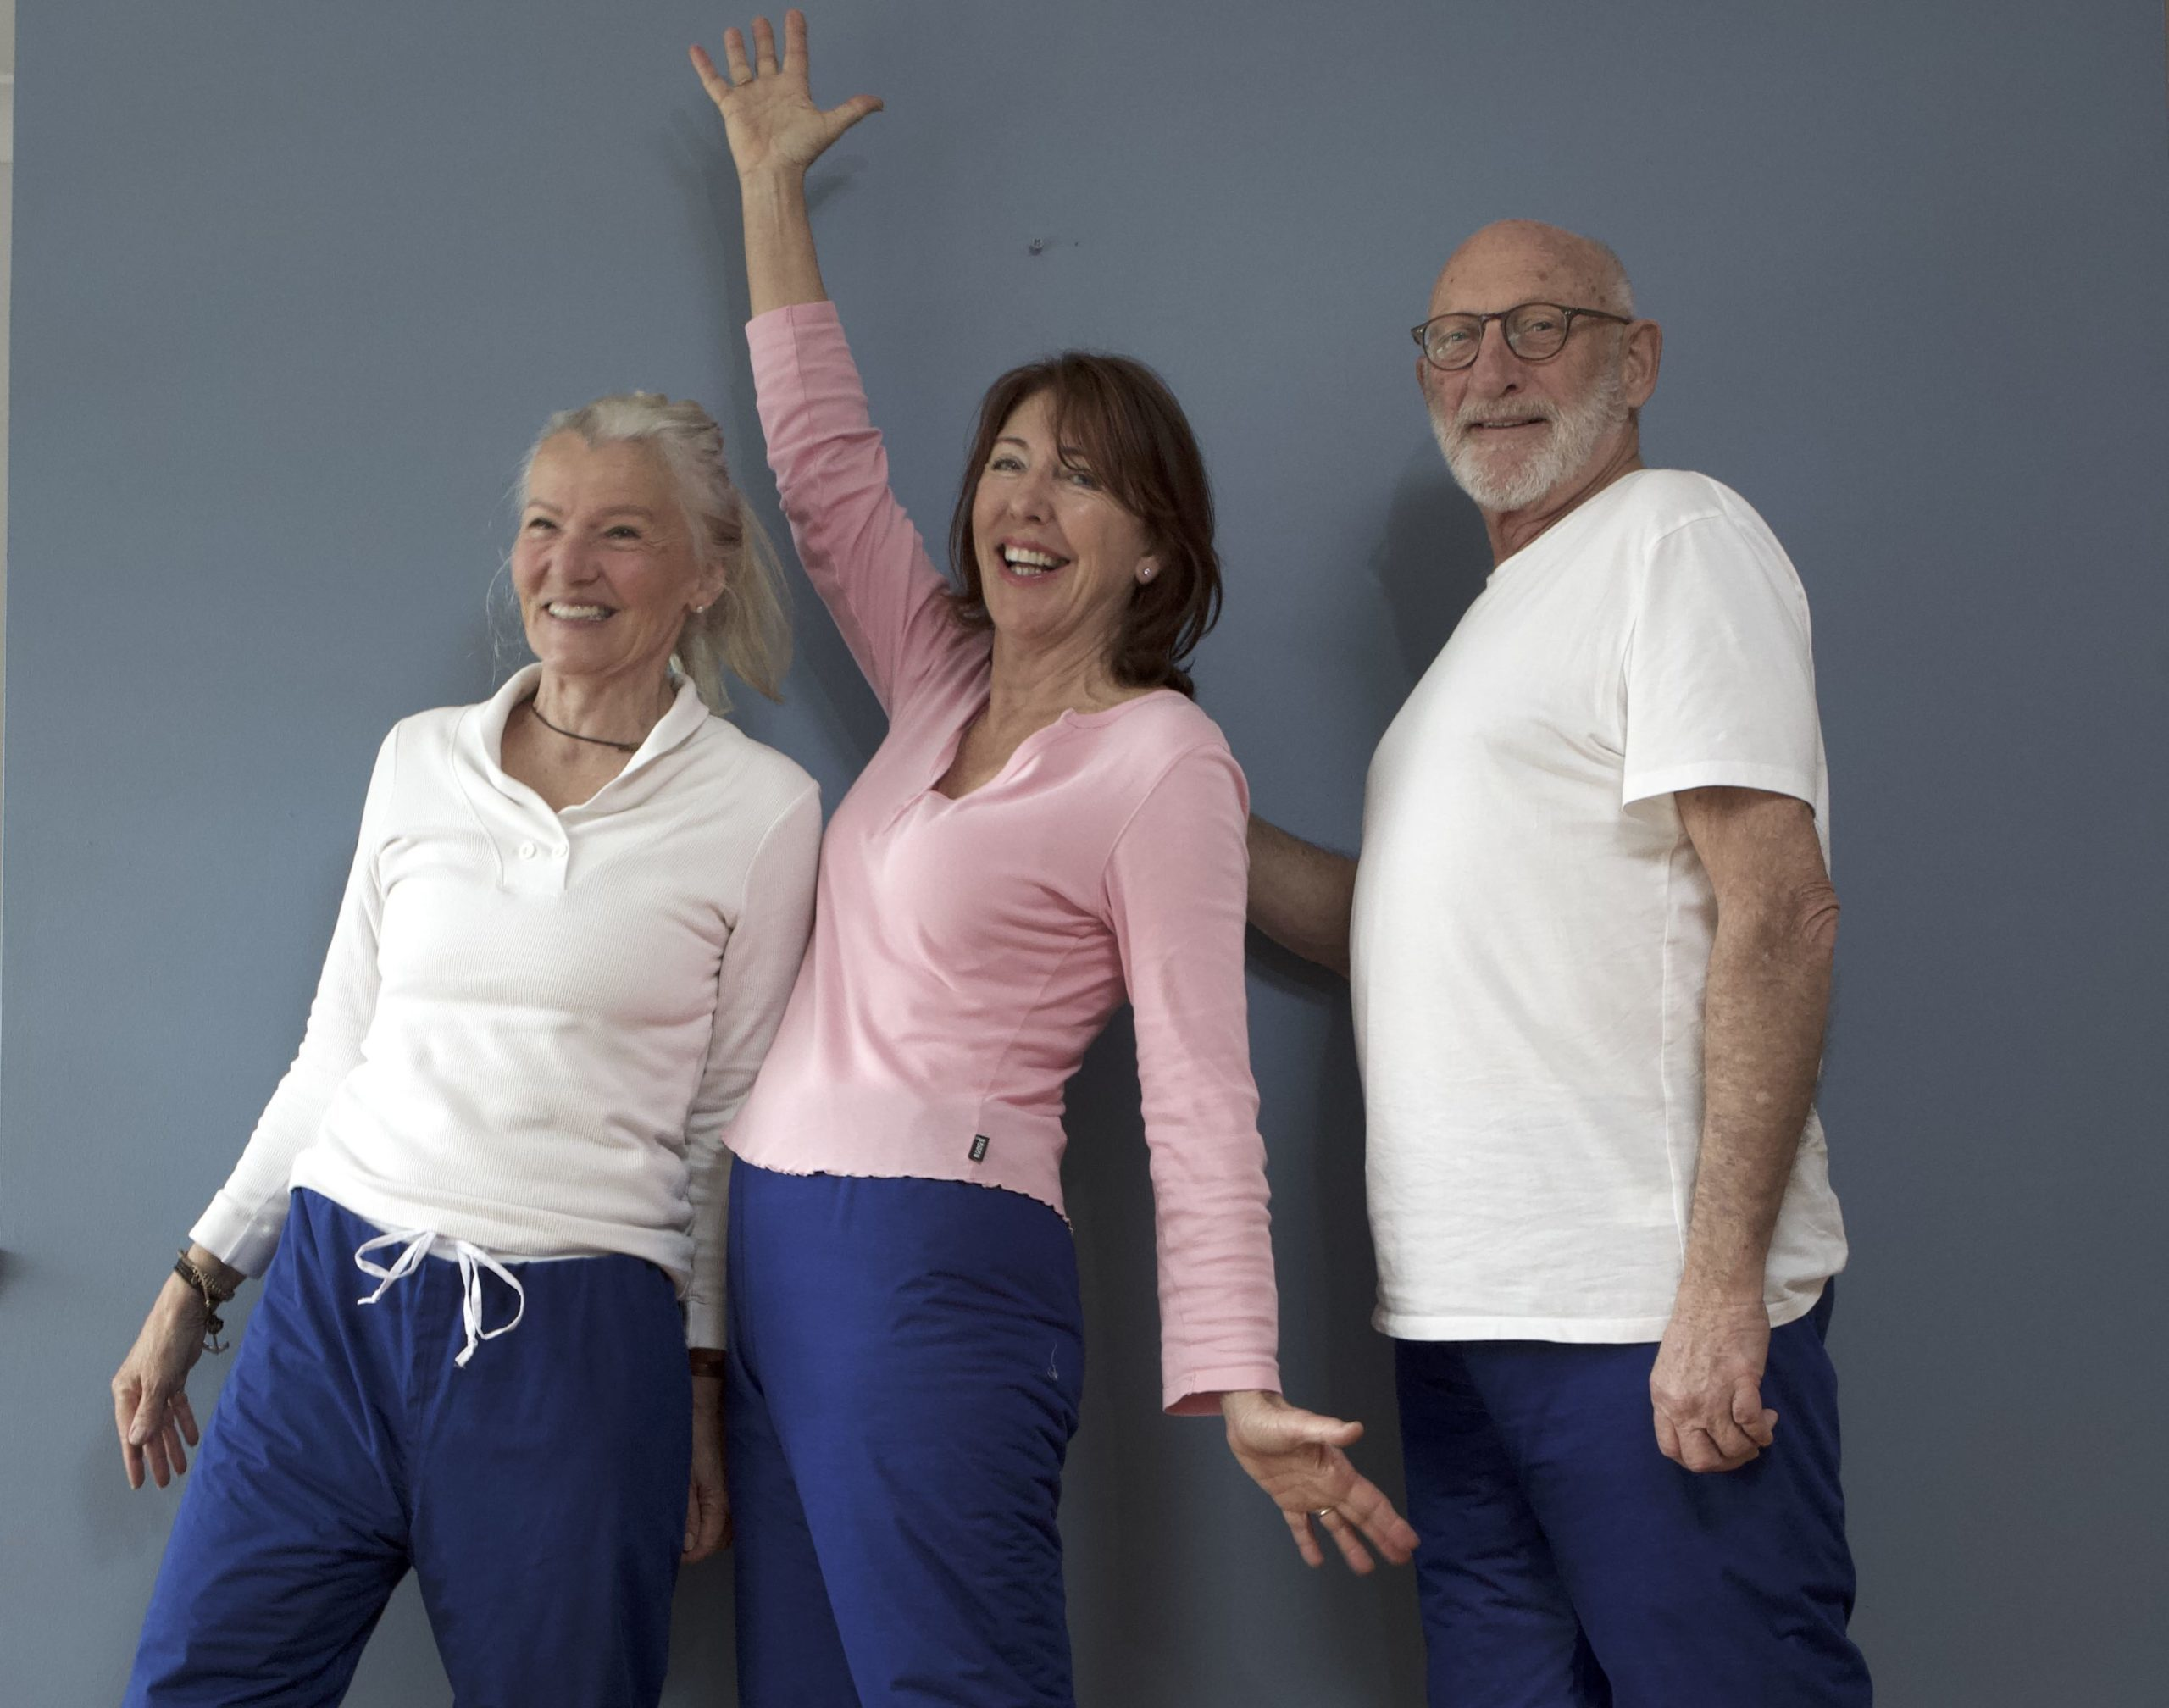 Pjama washable bedwetting shorts and pants for adults incontinence aid